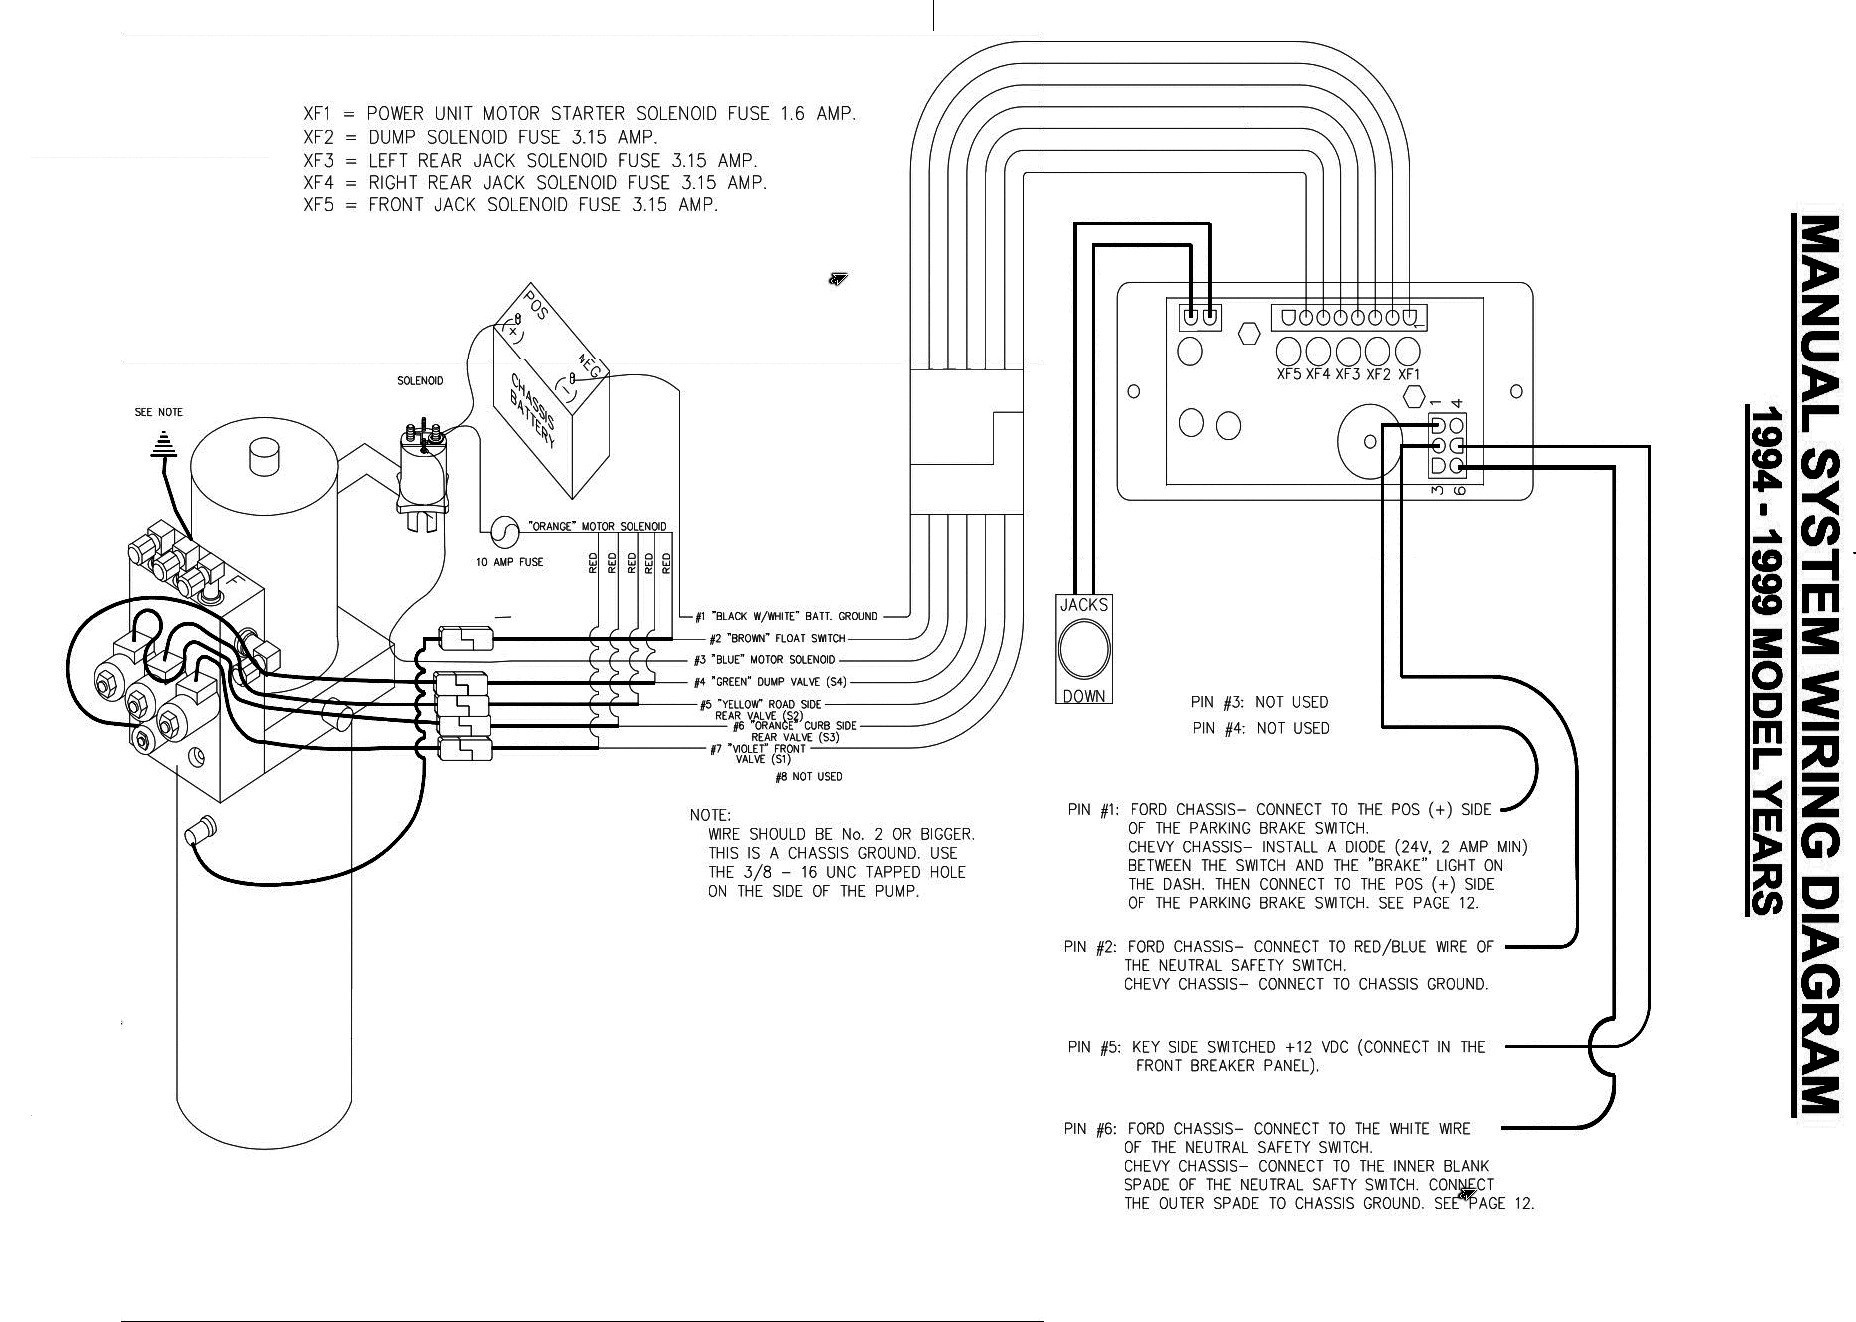 Cf Moto 500 Wiring Diagram Everything About Hisun Utv Bmx Library Rh 36 Bloxhuette De 50cc Scooter Diagrams